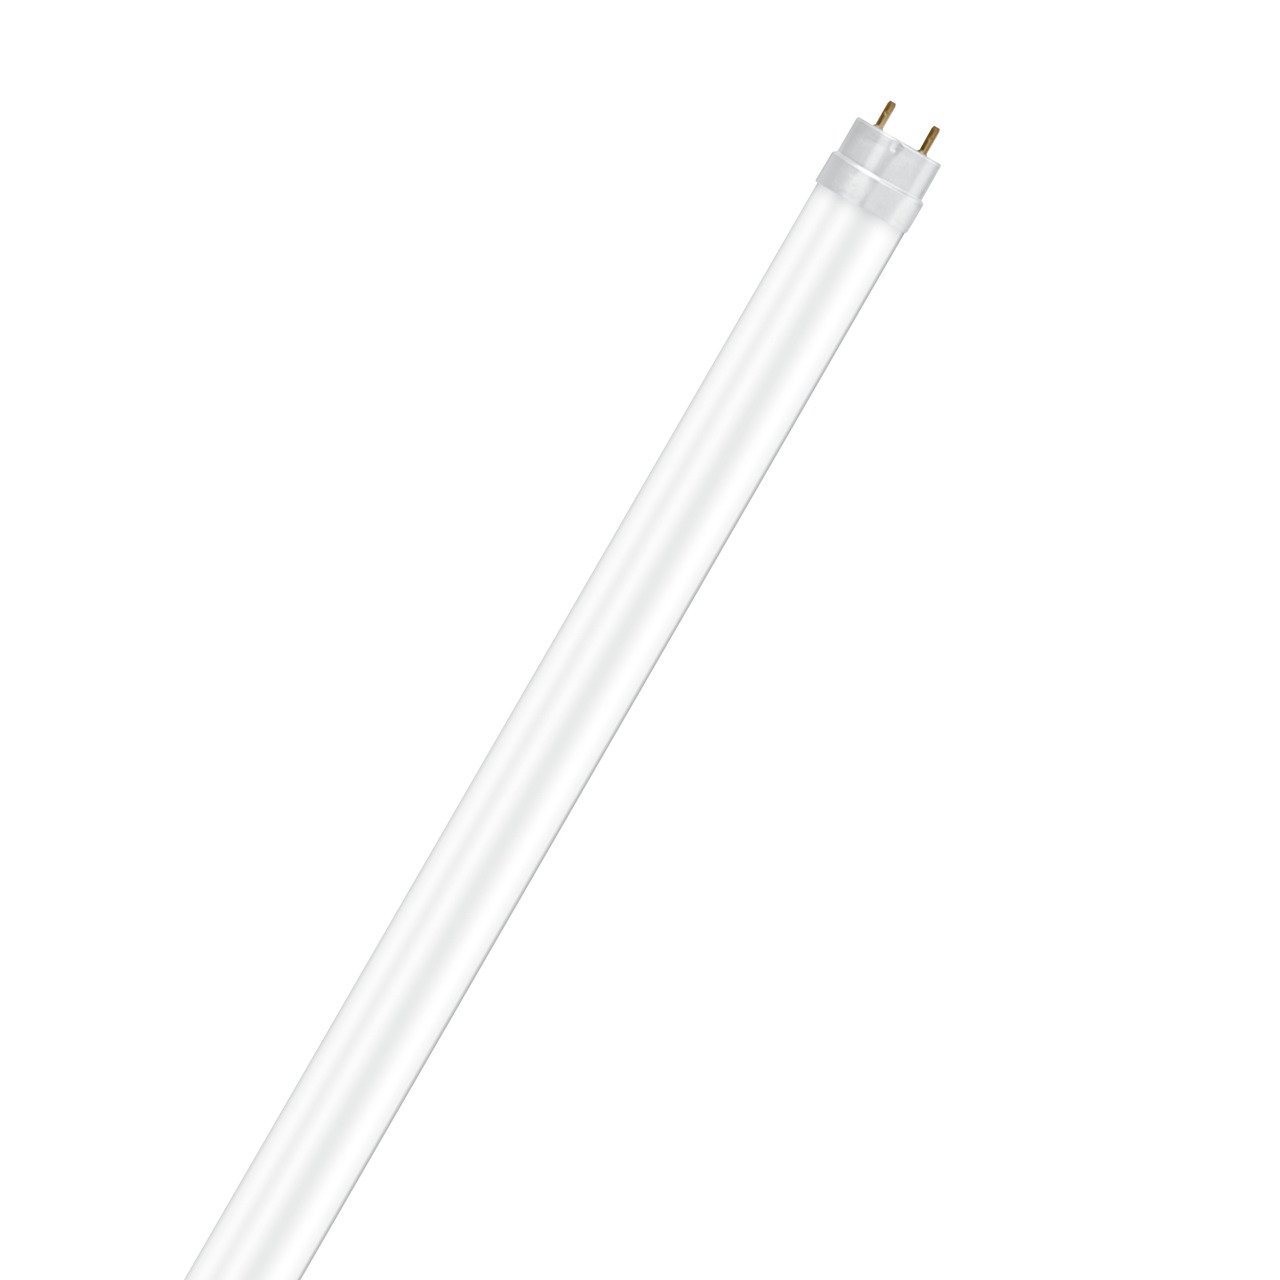 OSRAM SubstiTUBE Star 16-2-W-T8-LED-Röhrenlampe 120 cm- neutralweiss